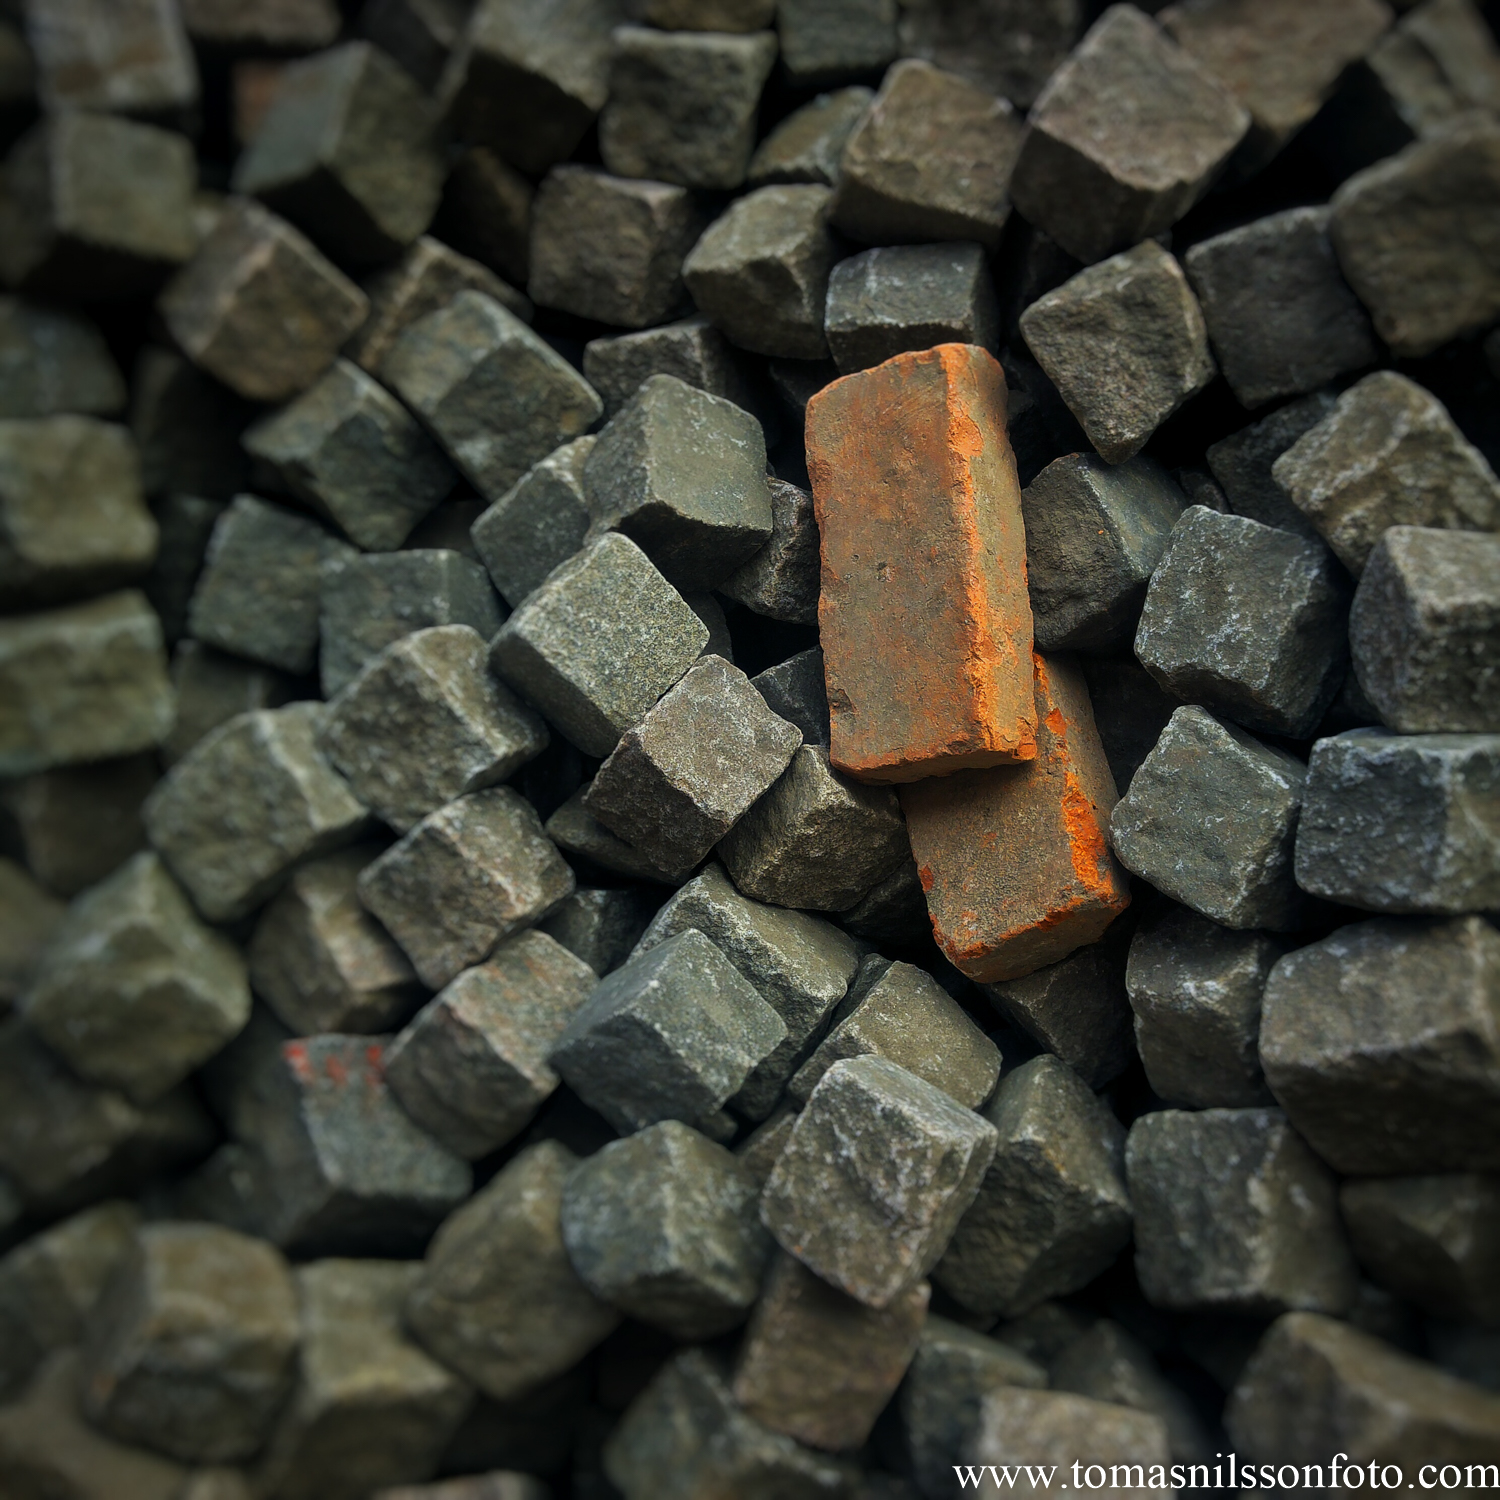 June 9 - Day 161: Just another brick in the pile...or two